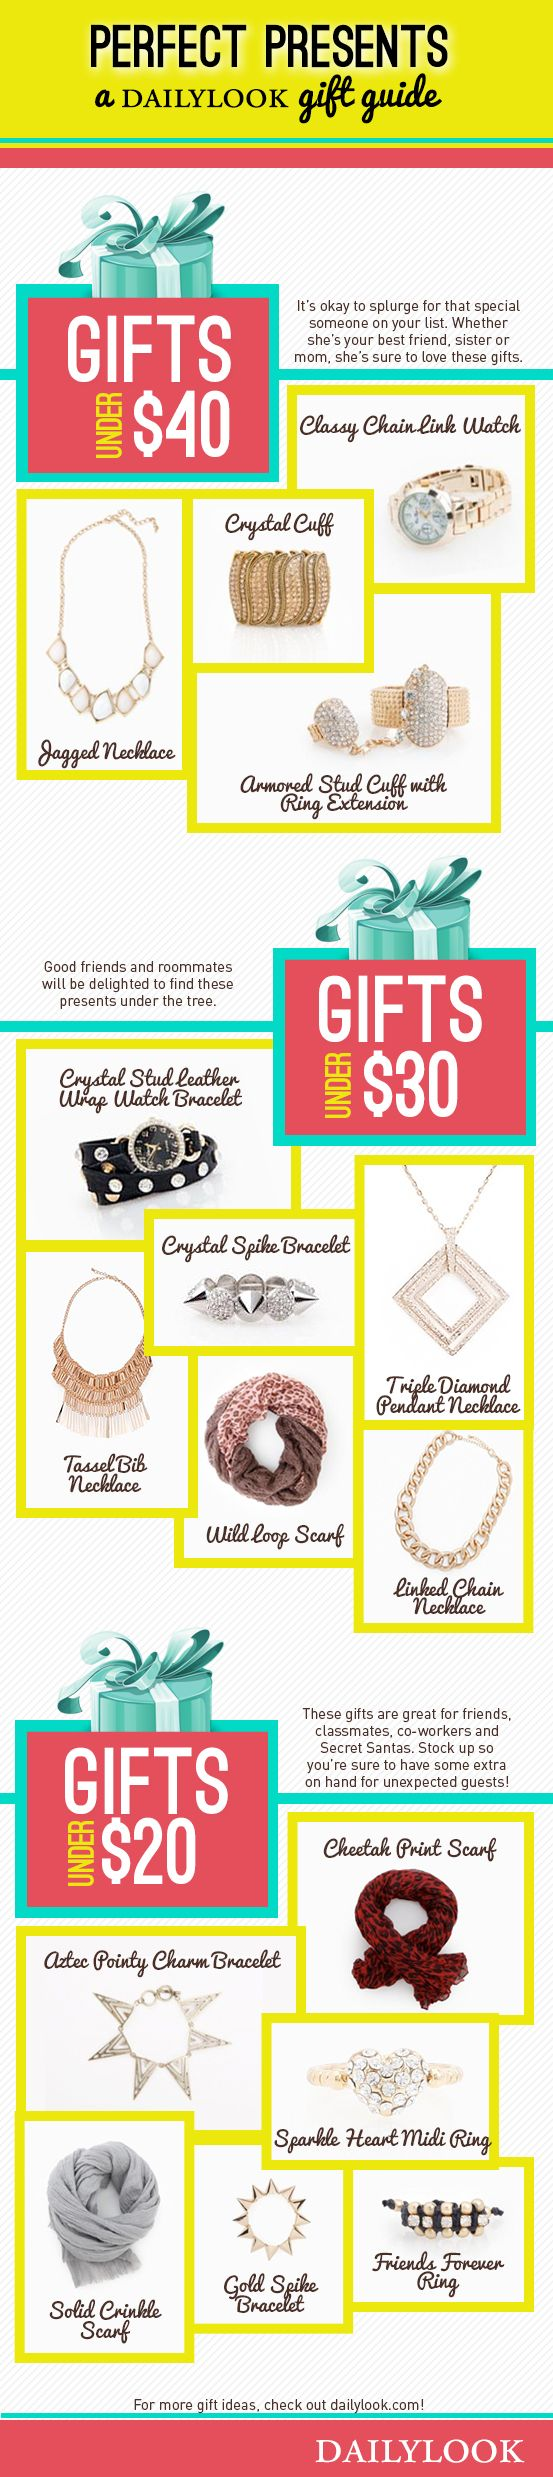 Perfect Presents: A DailyLook Gift Guide. Click the image link to shop these gifts! @dailylook #dailylook #dailylooksugarandspice